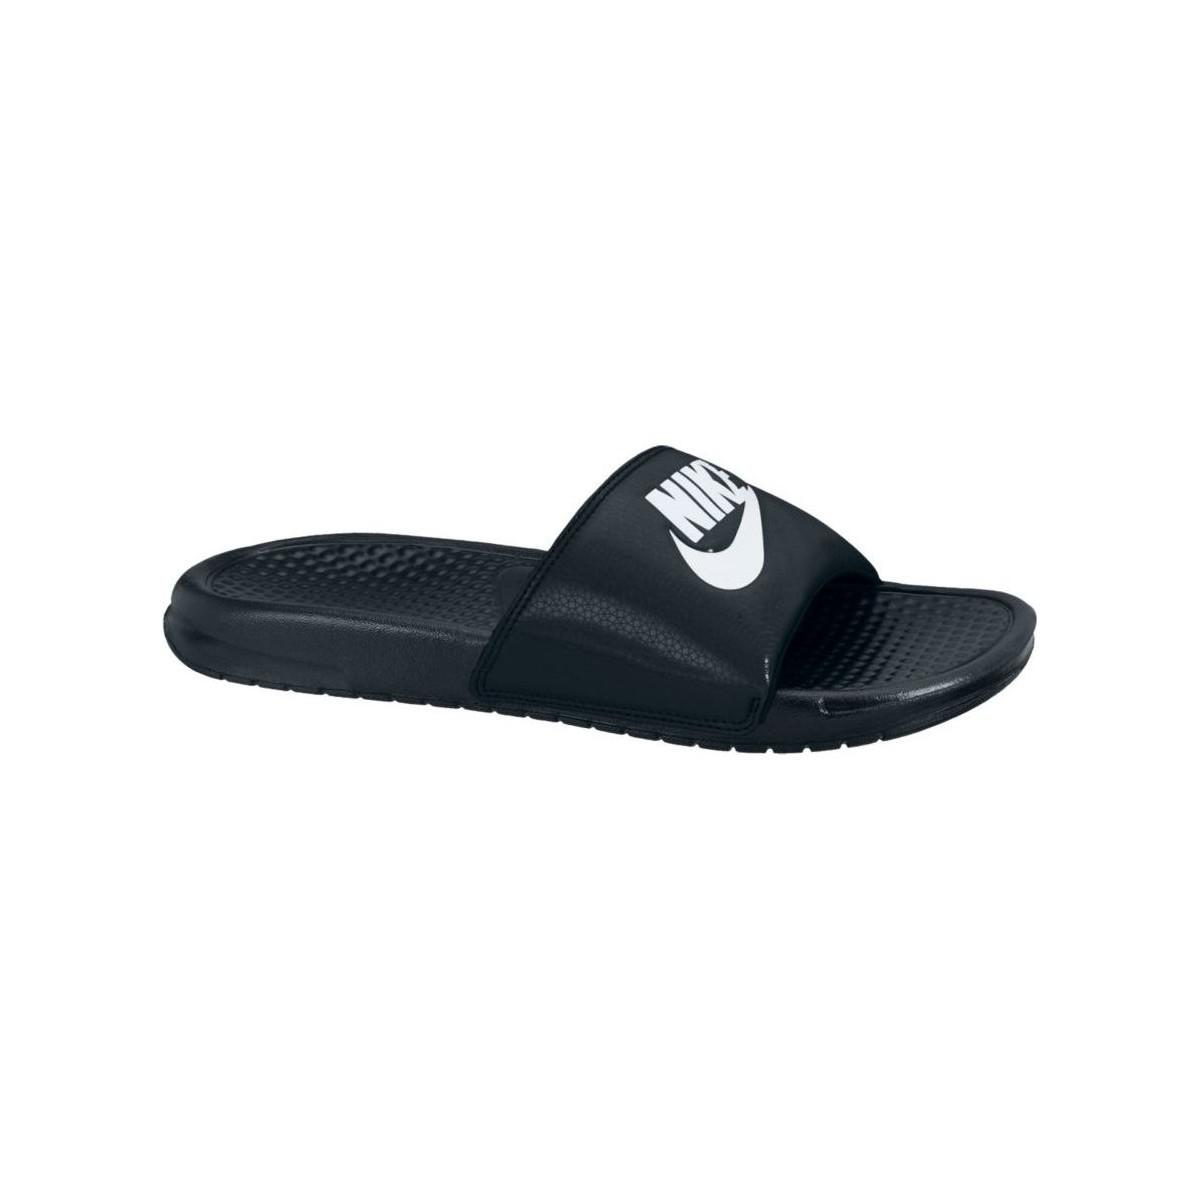 8f9f1e268 Nike Benassi Jdi 343880 090 Men s Mules   Casual Shoes In Black in ...